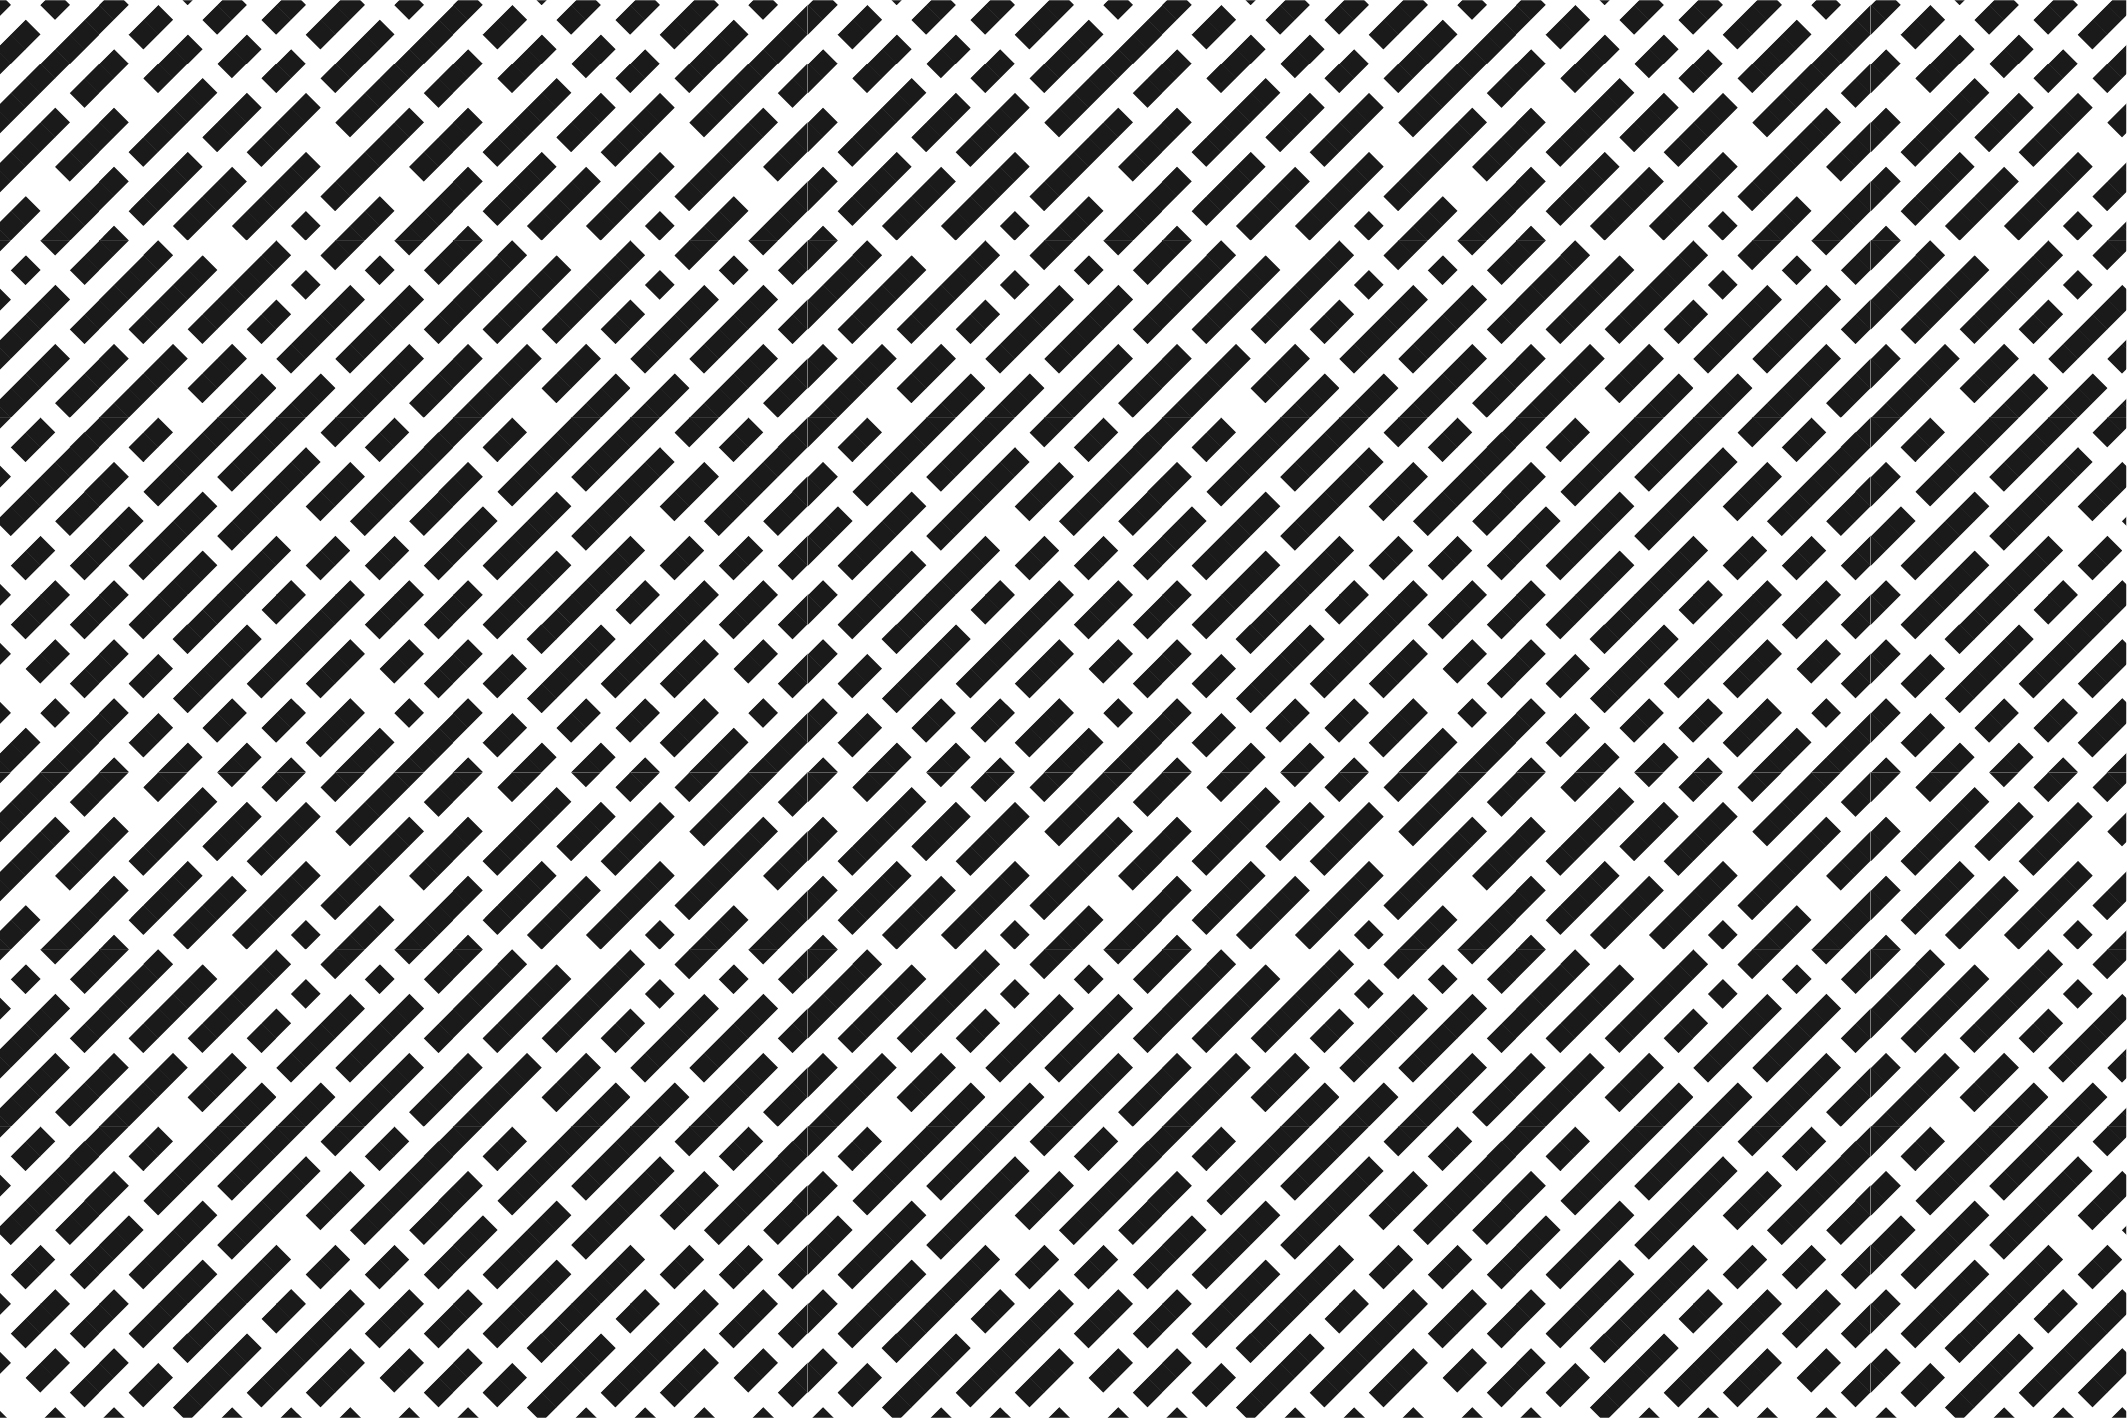 Geometric seamless patterns. B&W. example image 2